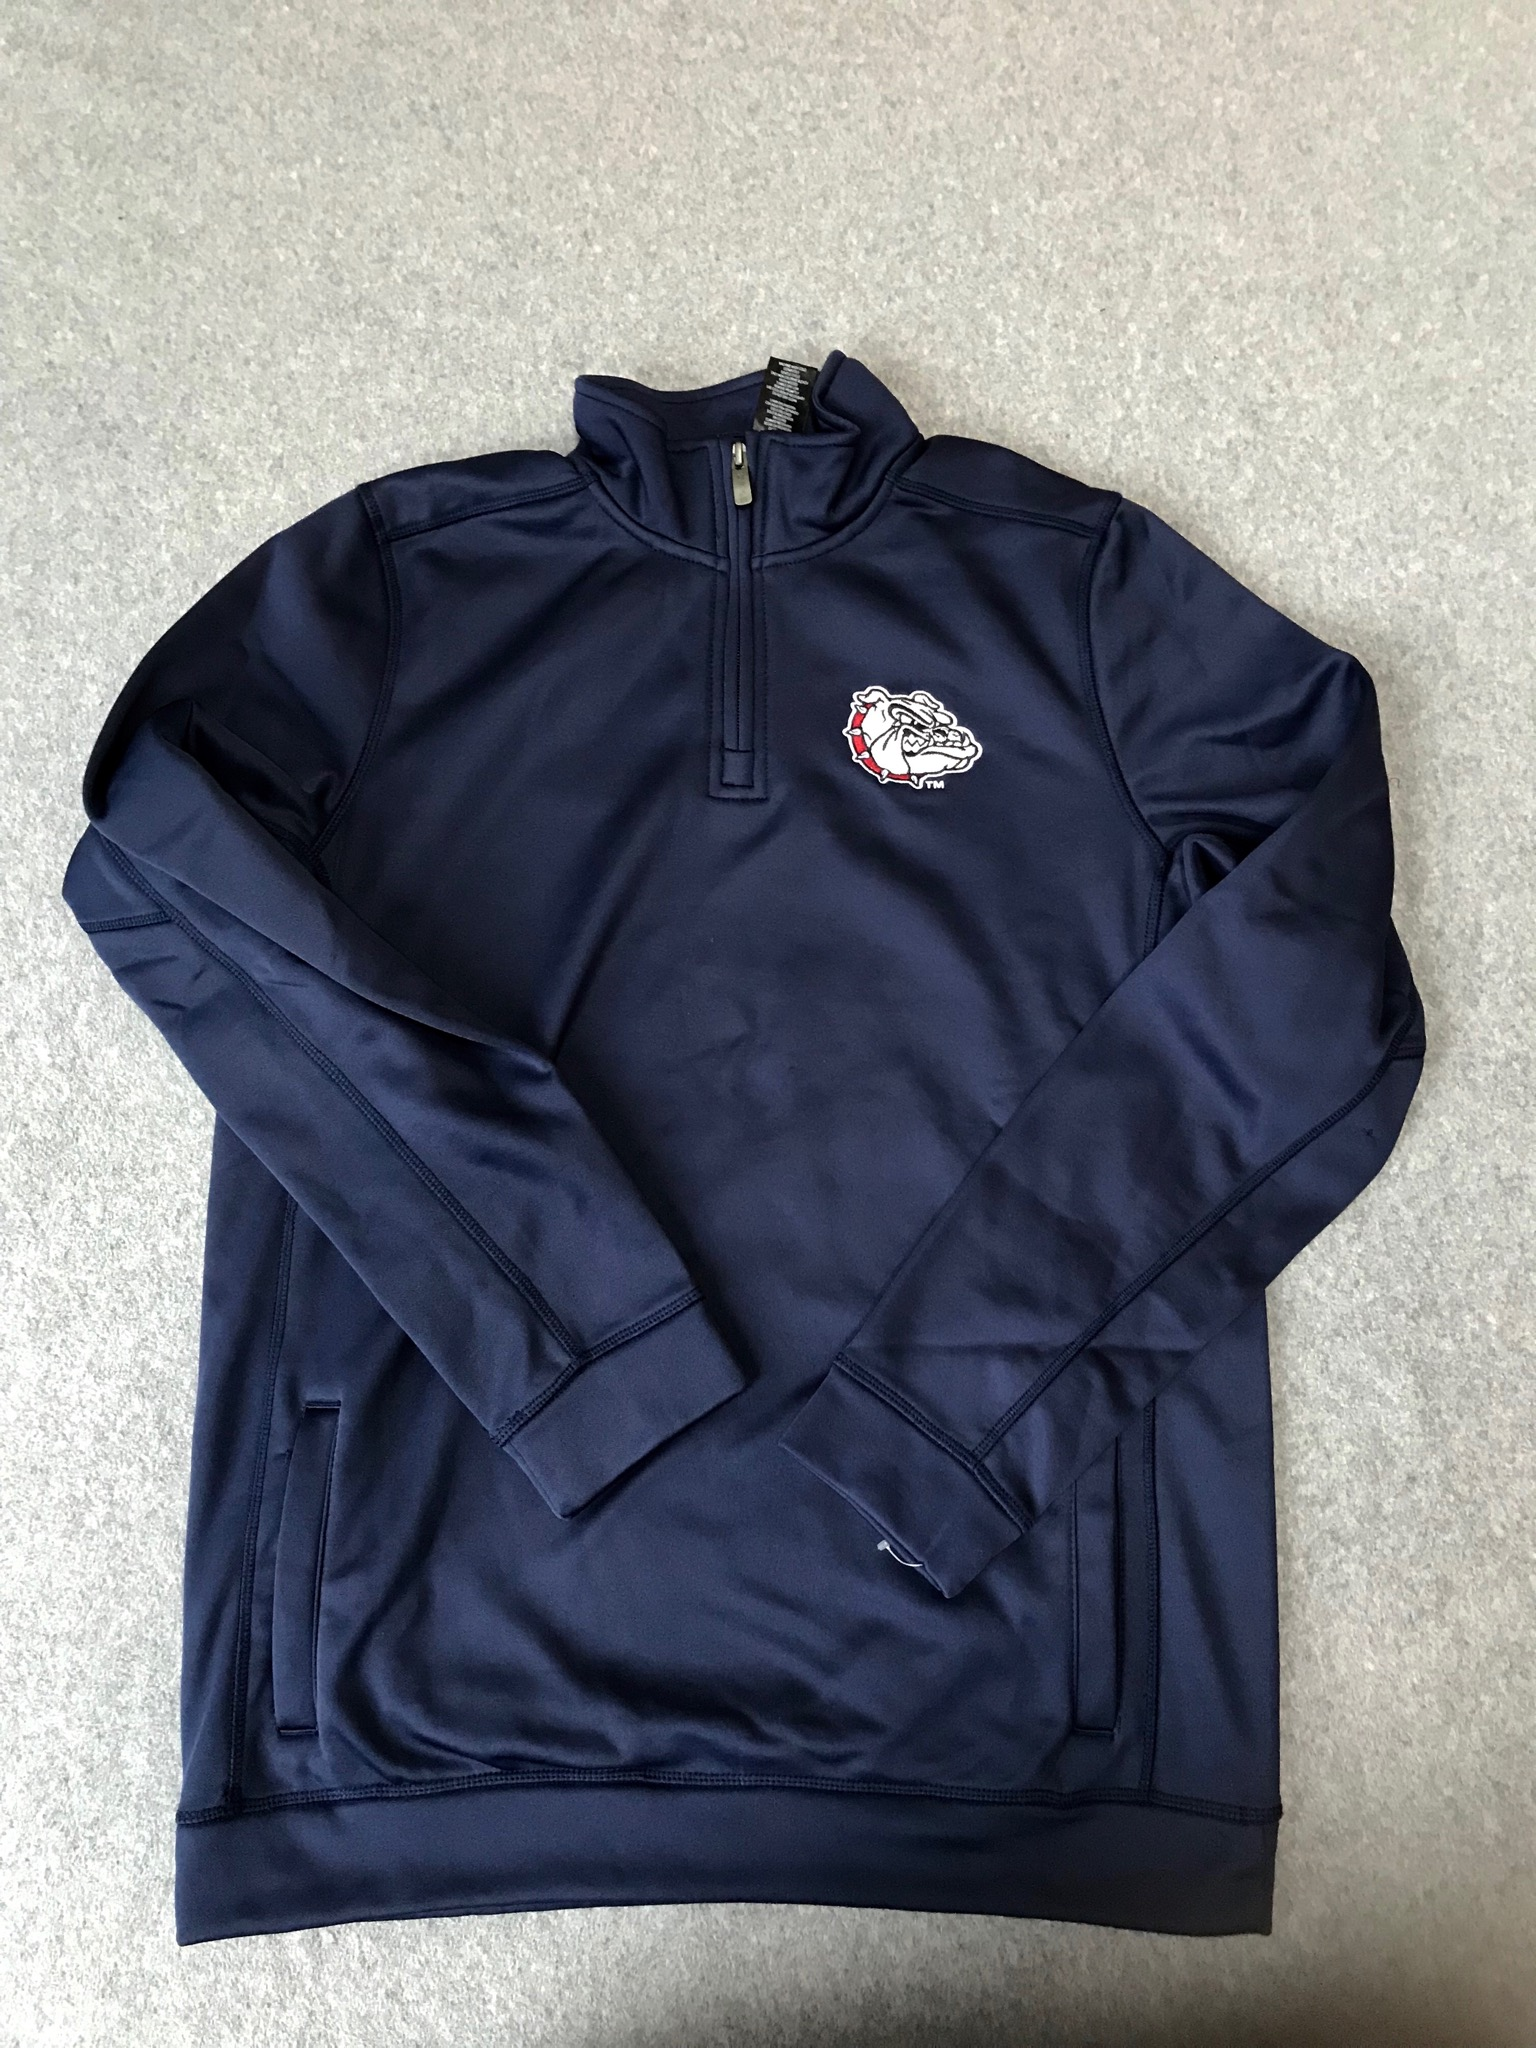 Gonzaga NWT Quarter Zip Navy Embroidered XL